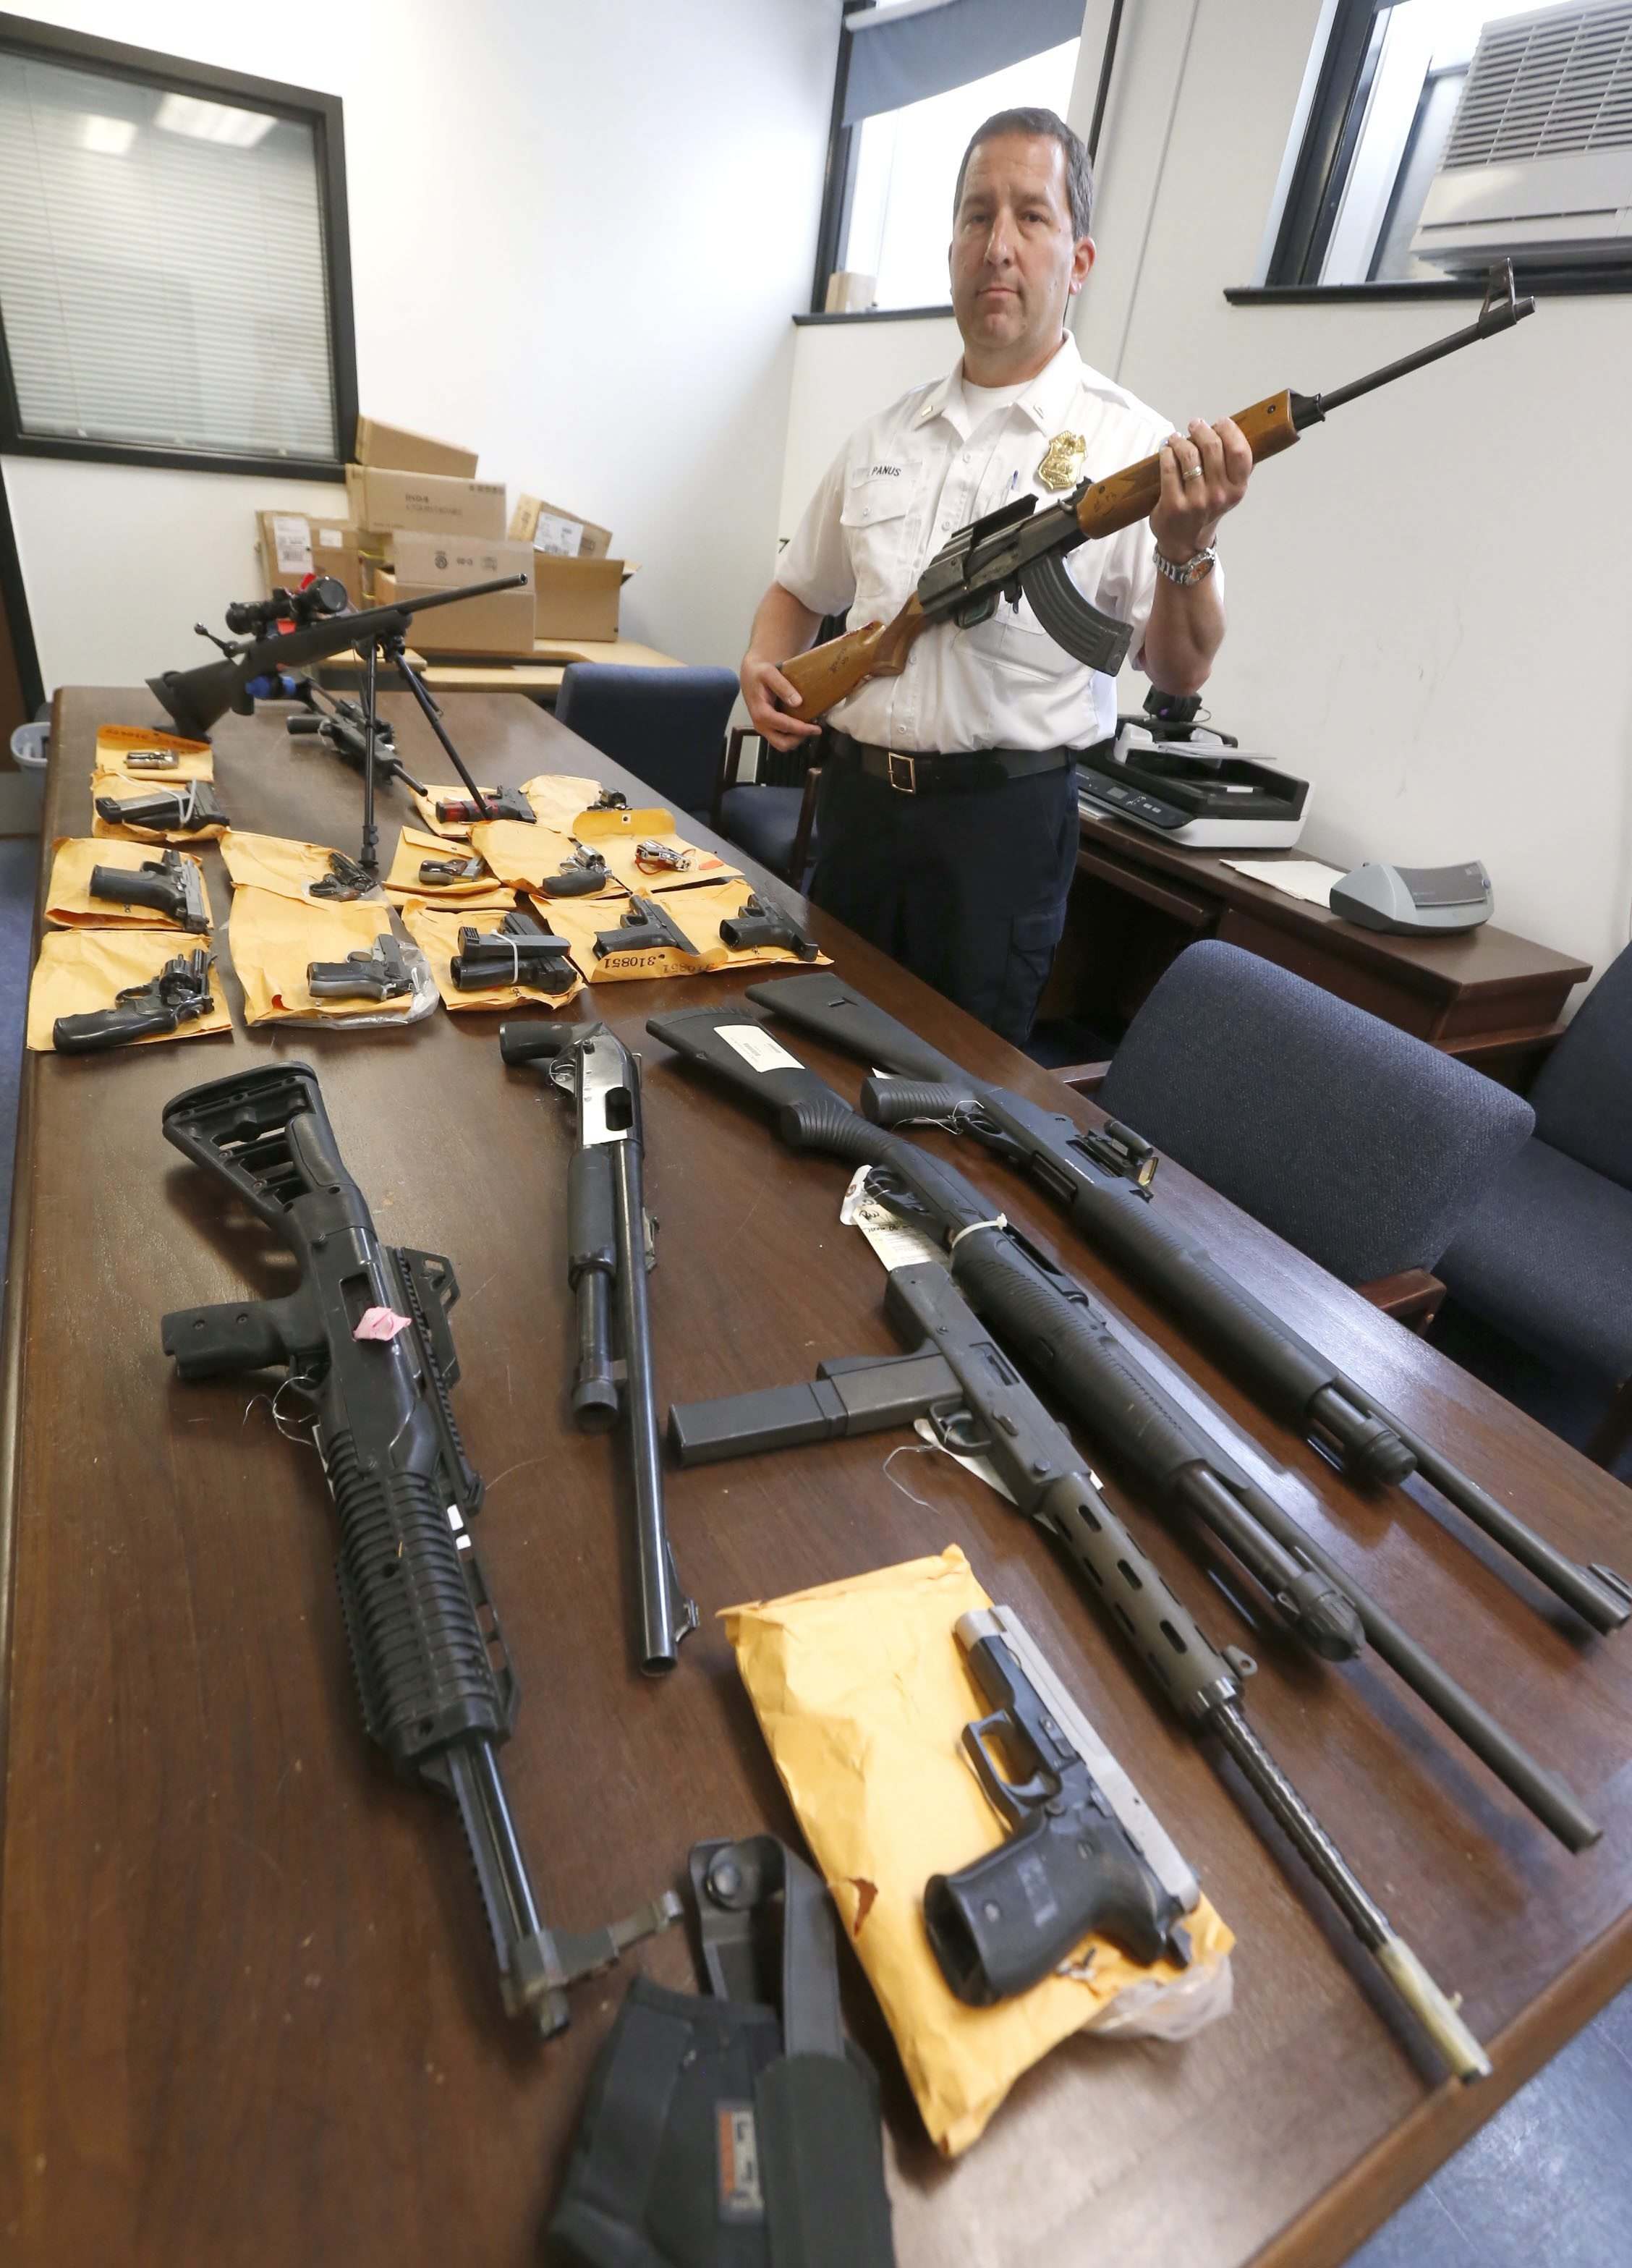 Buffalo Police Lt. Joe Panus shows a collection of confiscated guns that they've taken off the street including a semi-automatic AK-47 that he was holding in the basement of the police head quarters on Wednesday, May 25, 2016.  (Robert Kirkham/Buffalo News)